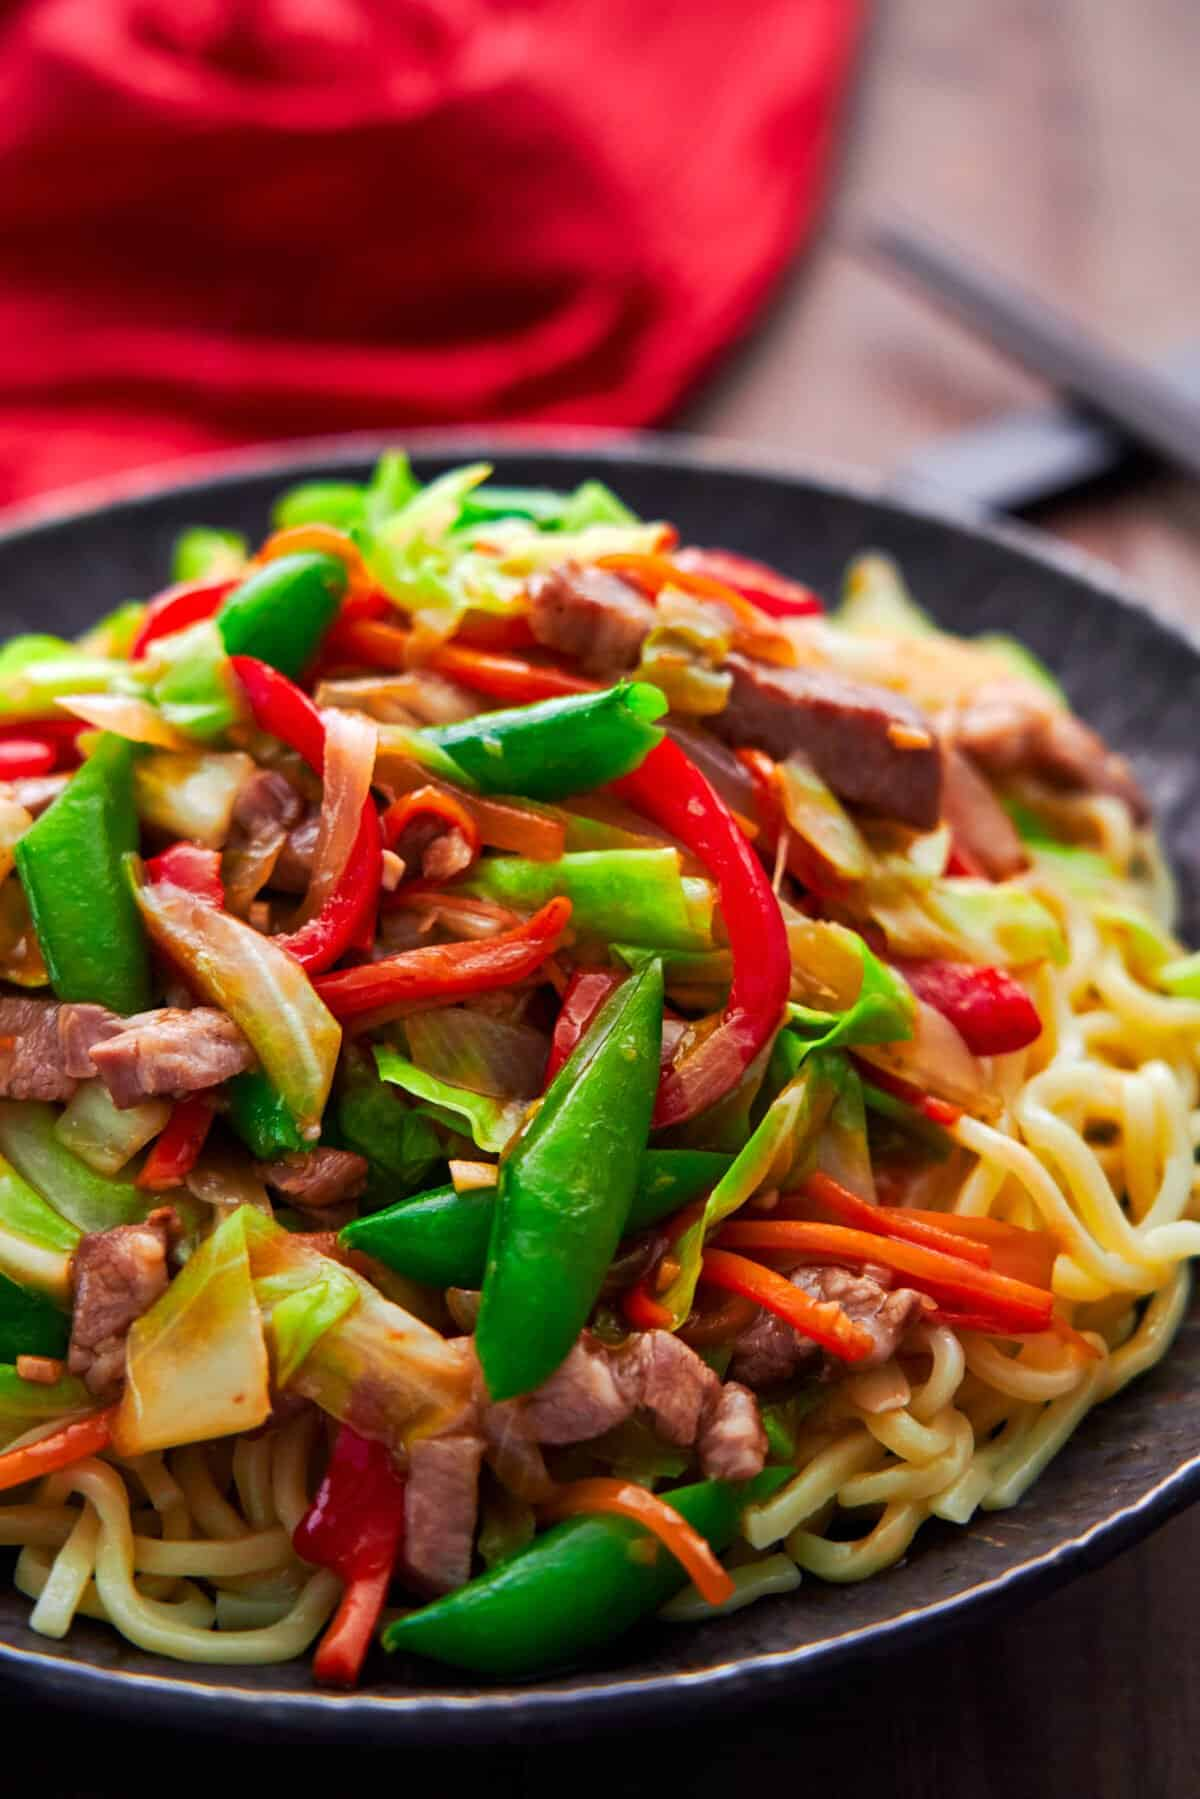 With loads of veggies and tender, juicy meat enrobed in a savory gravy, this easy Chop Suey recipe updates the classic Chinese-American favorite.